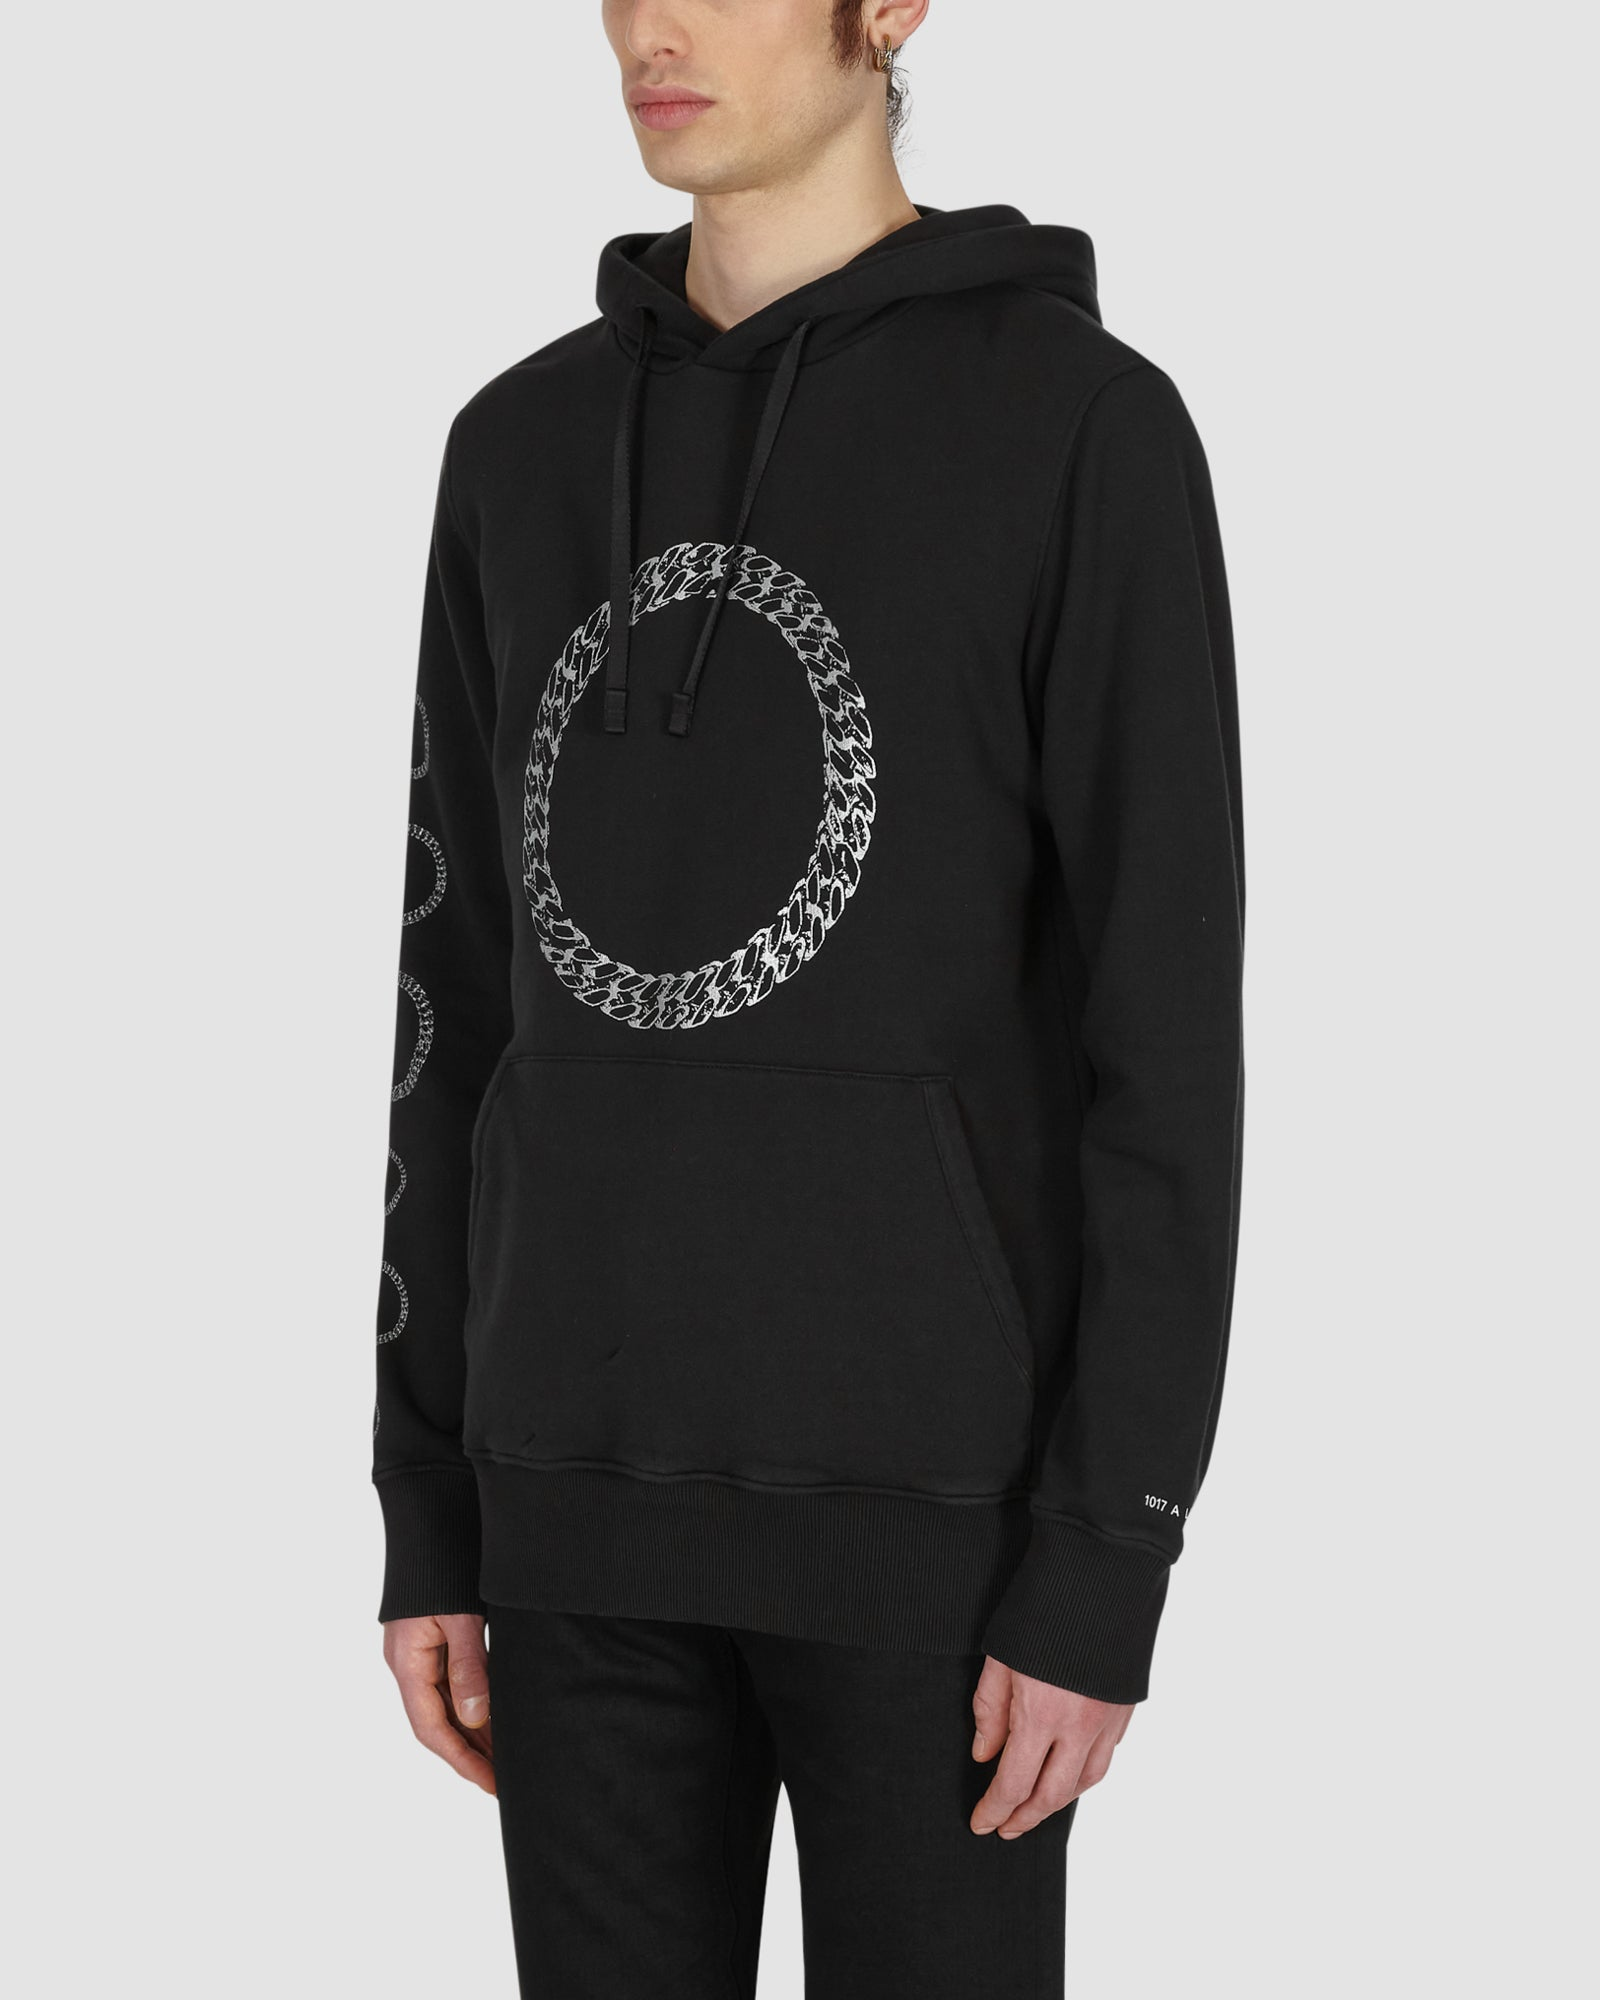 HOODIE WITH CUBE CHAIN GRAPHIC